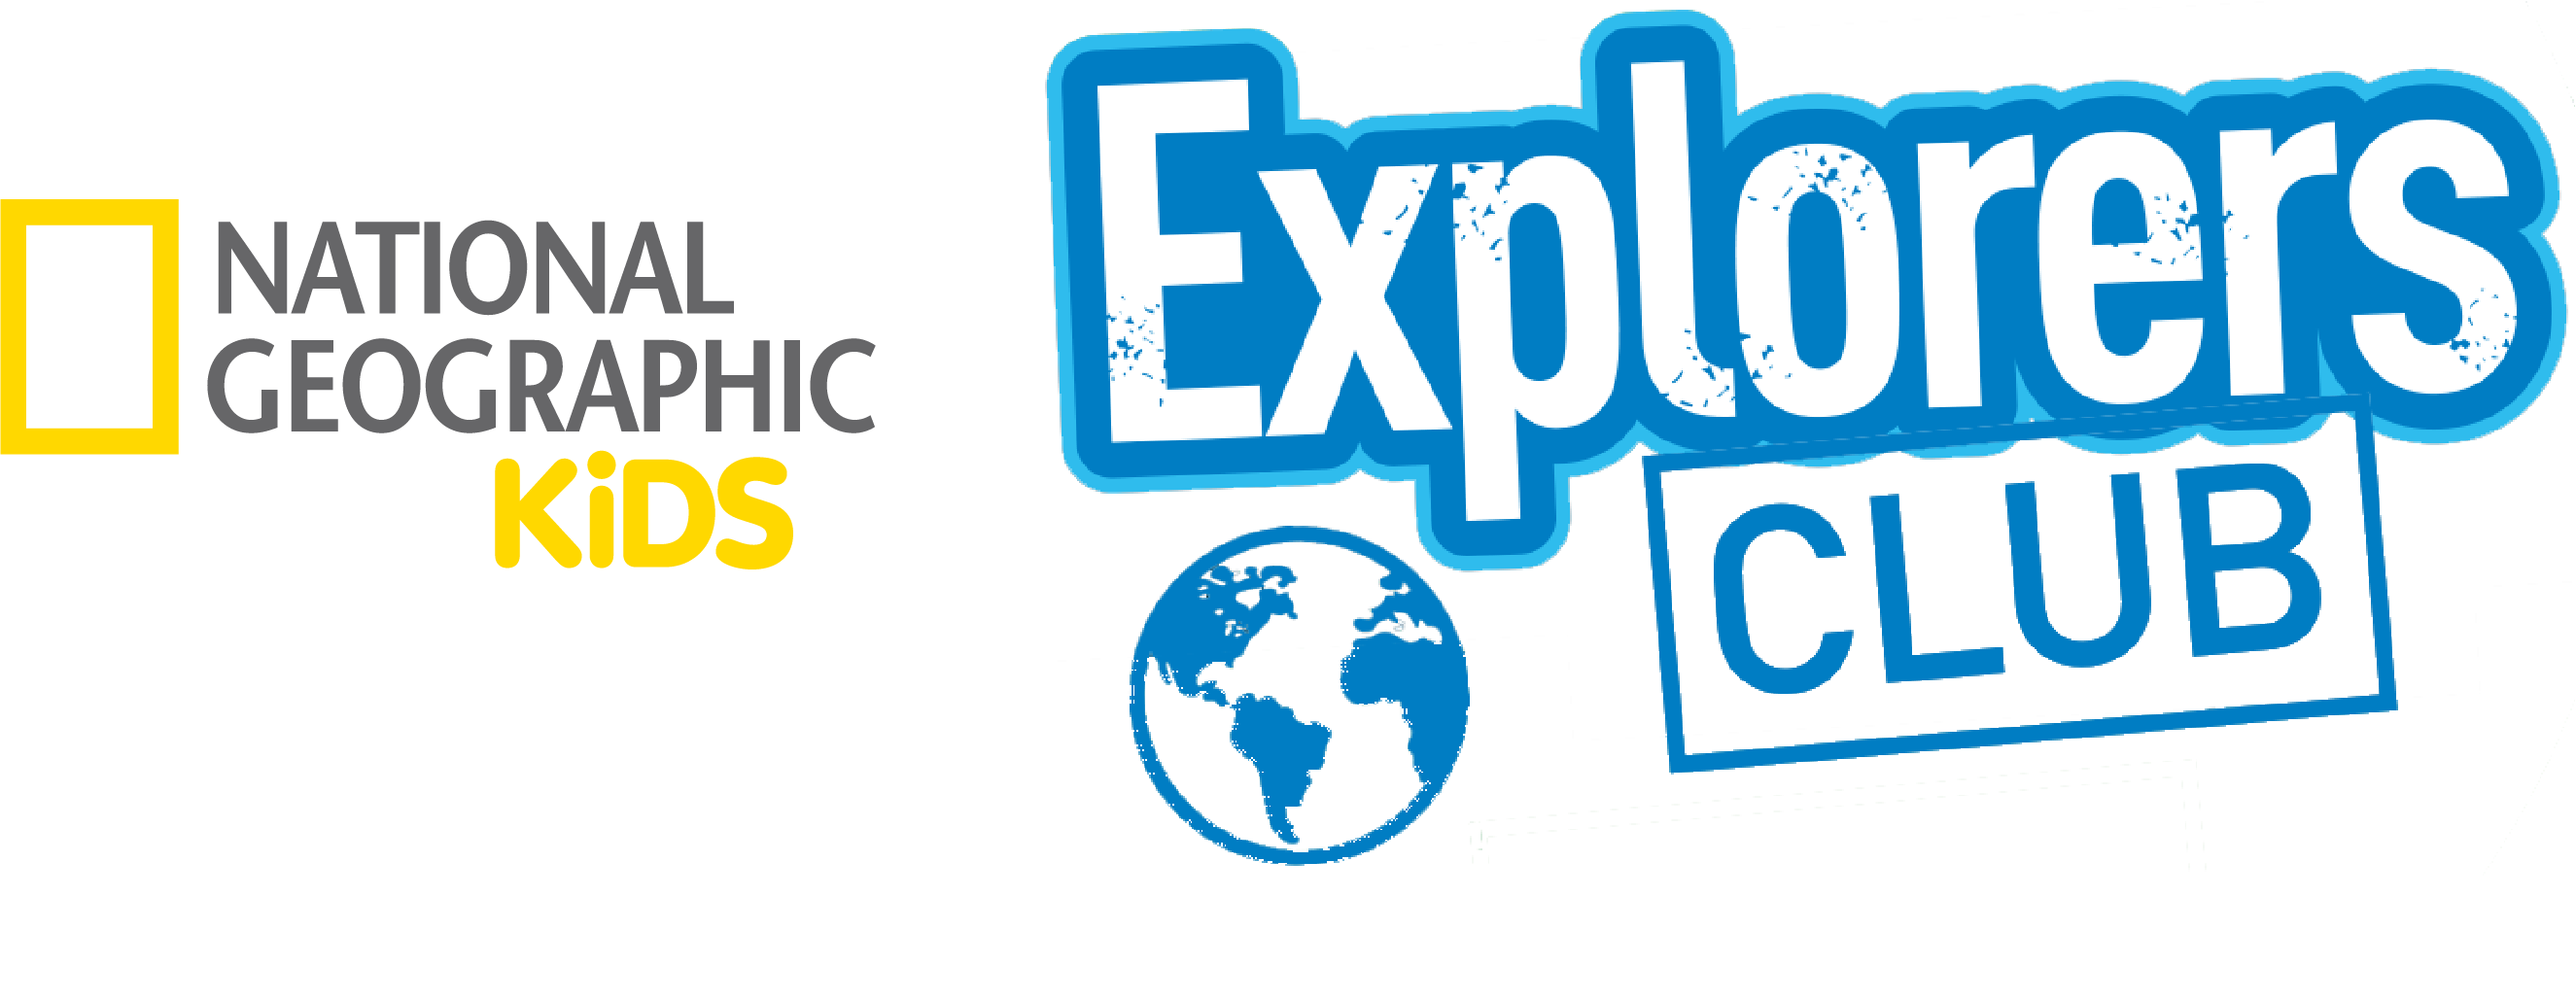 NatGeo_Exp-Club_logo_Rev-3-16